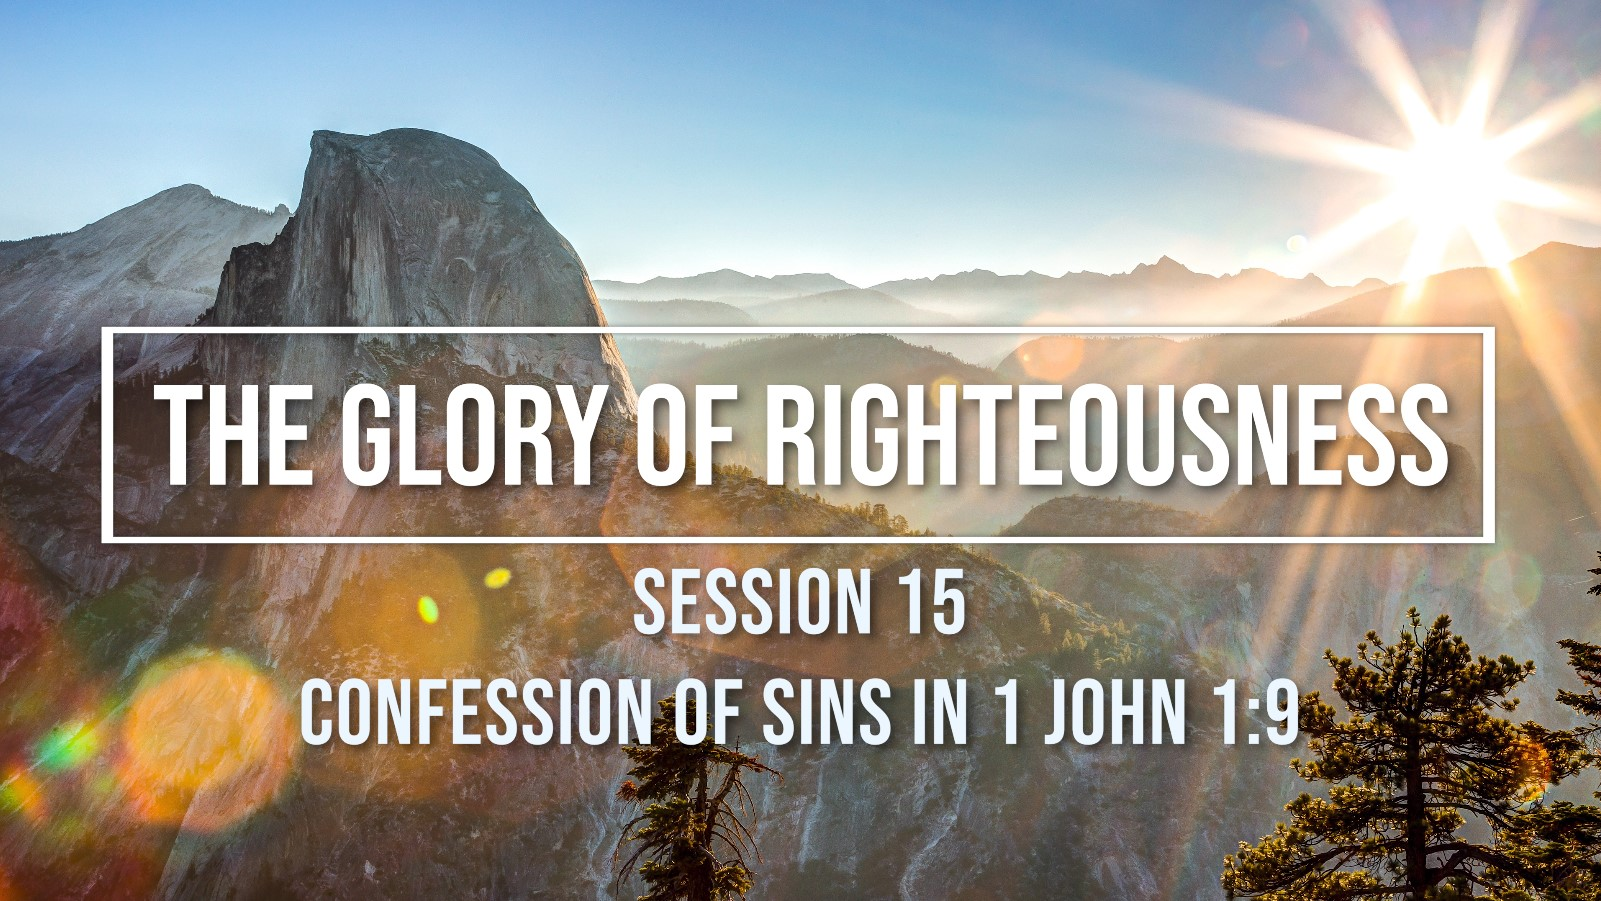 Session 15 - Confession of Sins in 1 John 1:9 Image